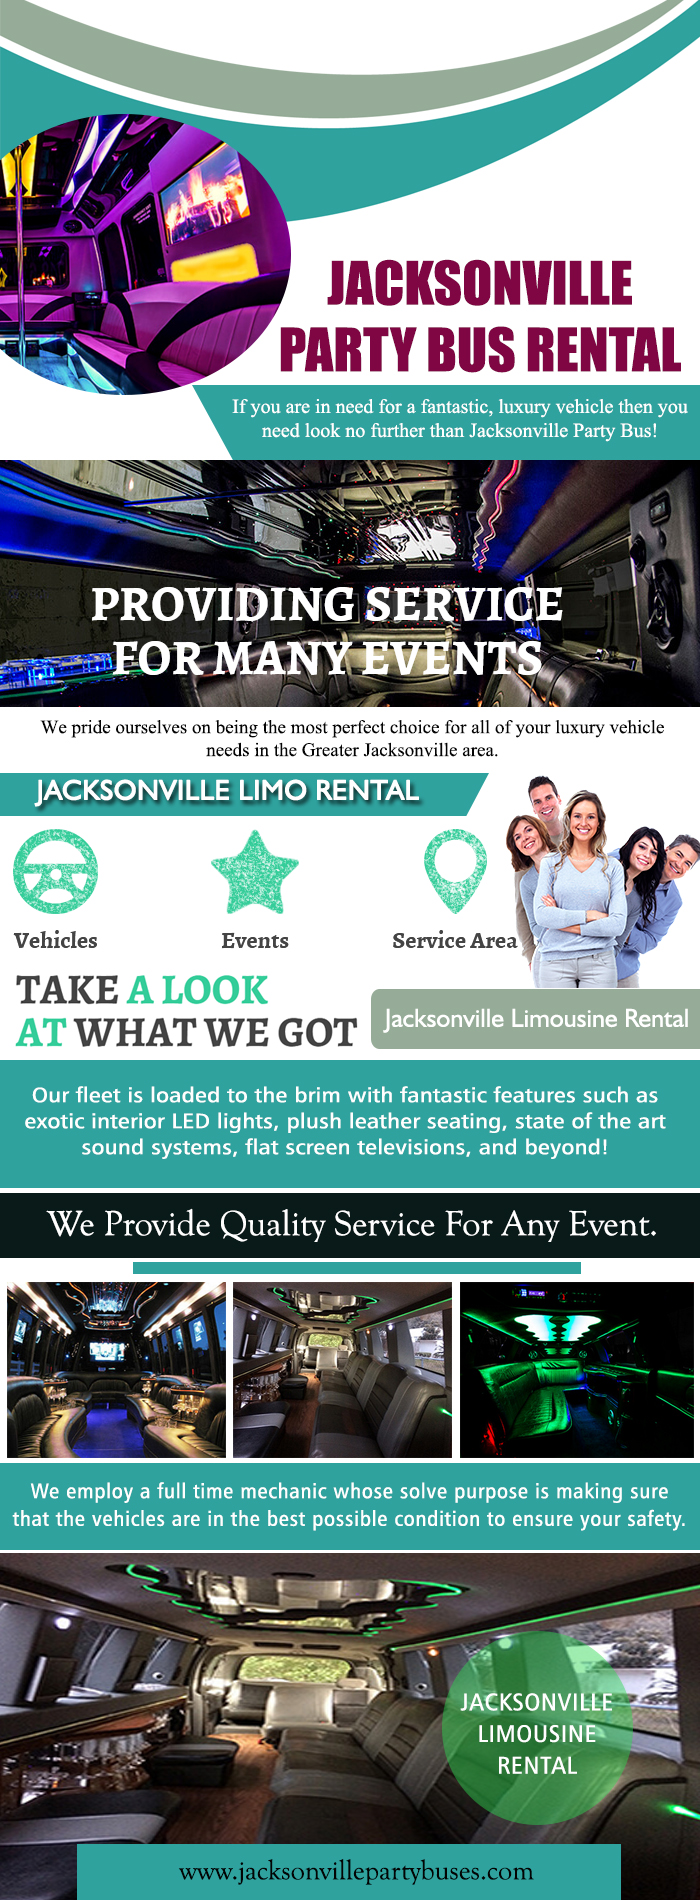 Jacksonville Party Bus Rental   Call (904) 601-090